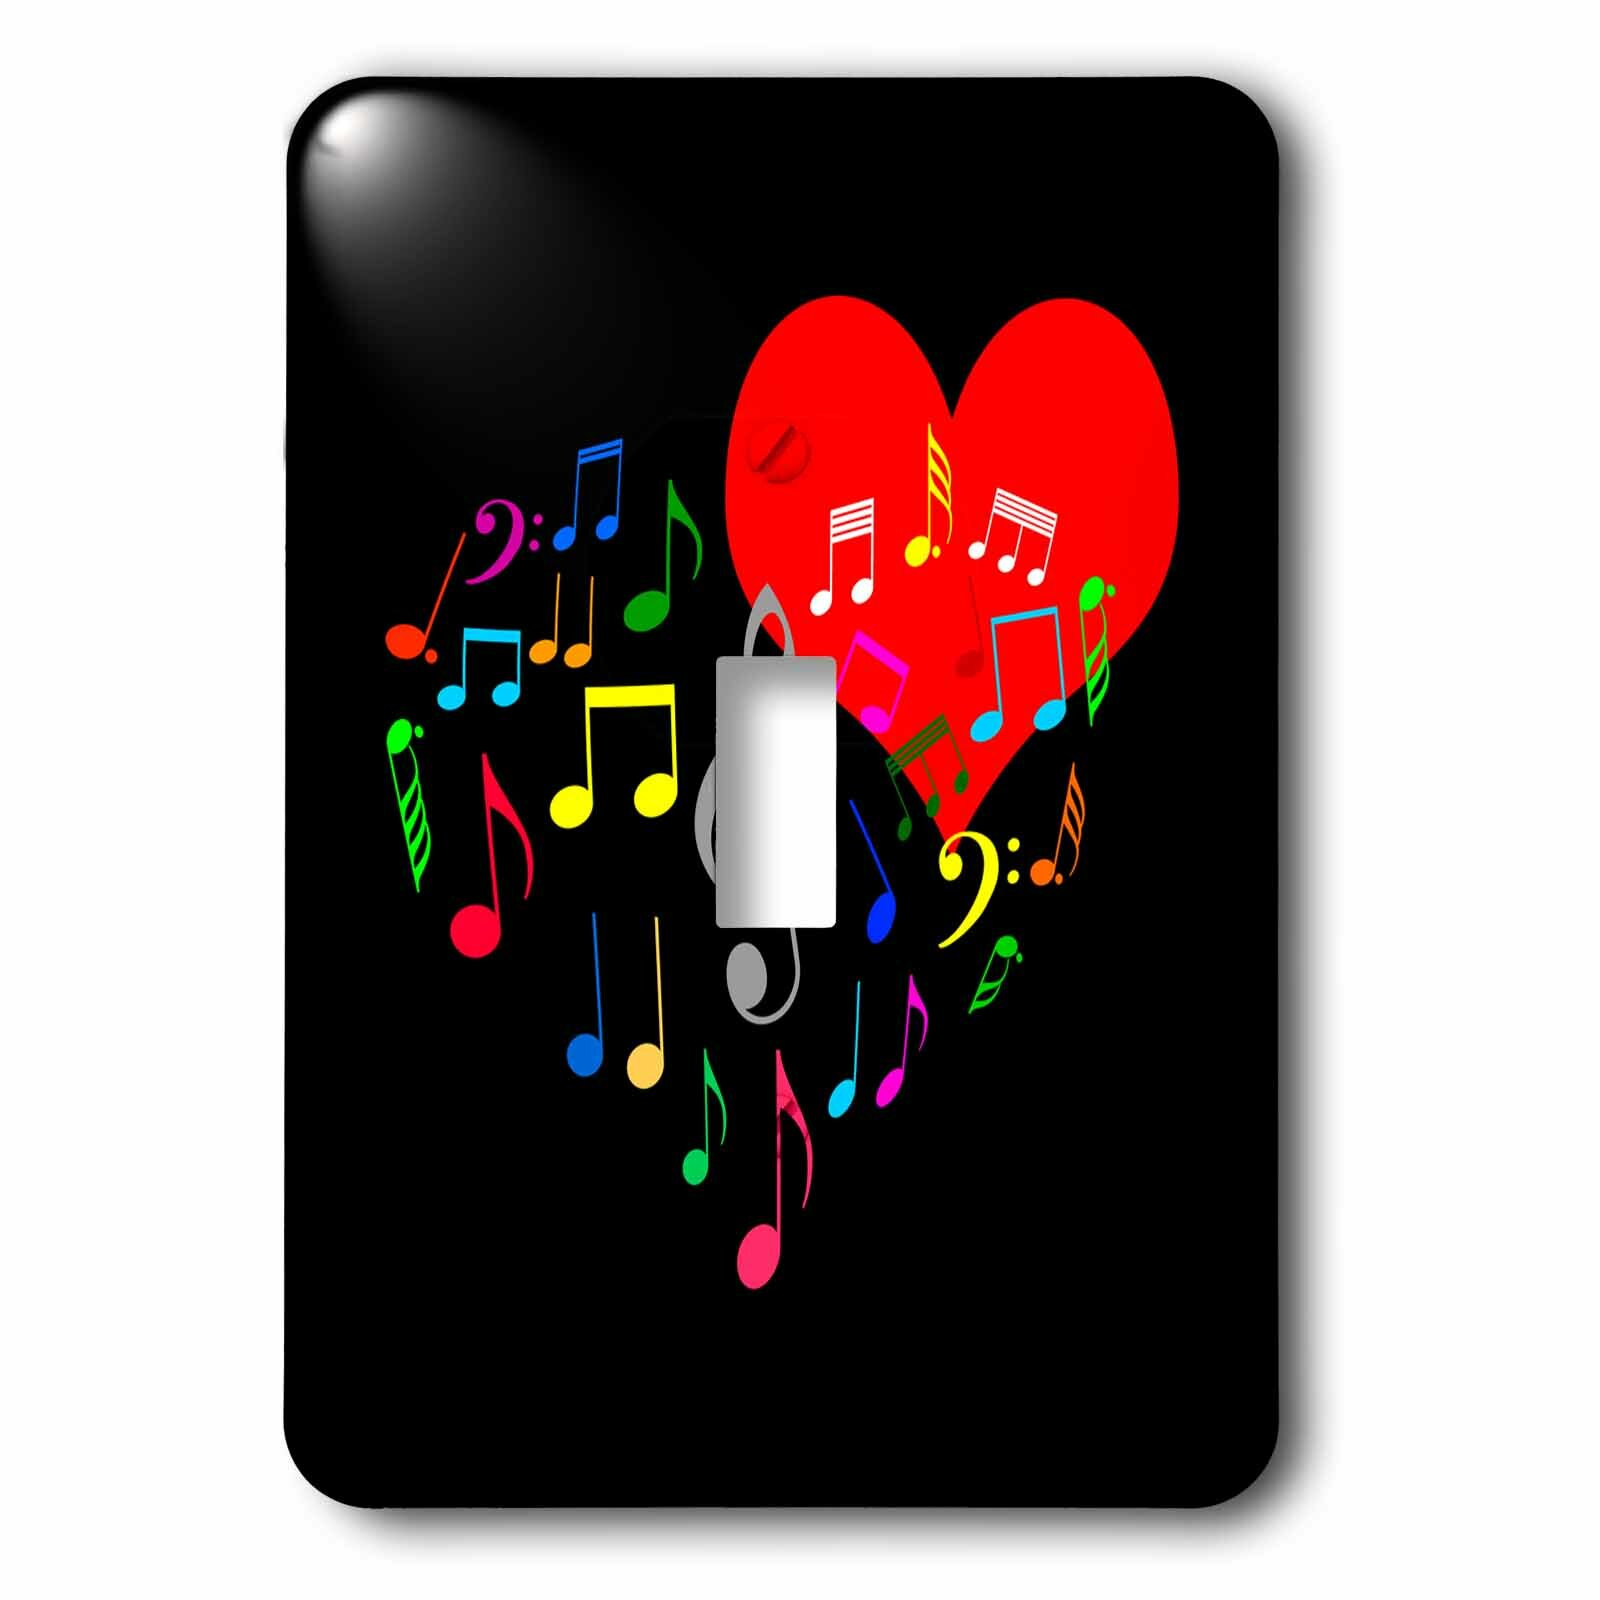 3drose Heart And Music Notes 1 Gang Toggle Light Switch Wall Plate Wayfair